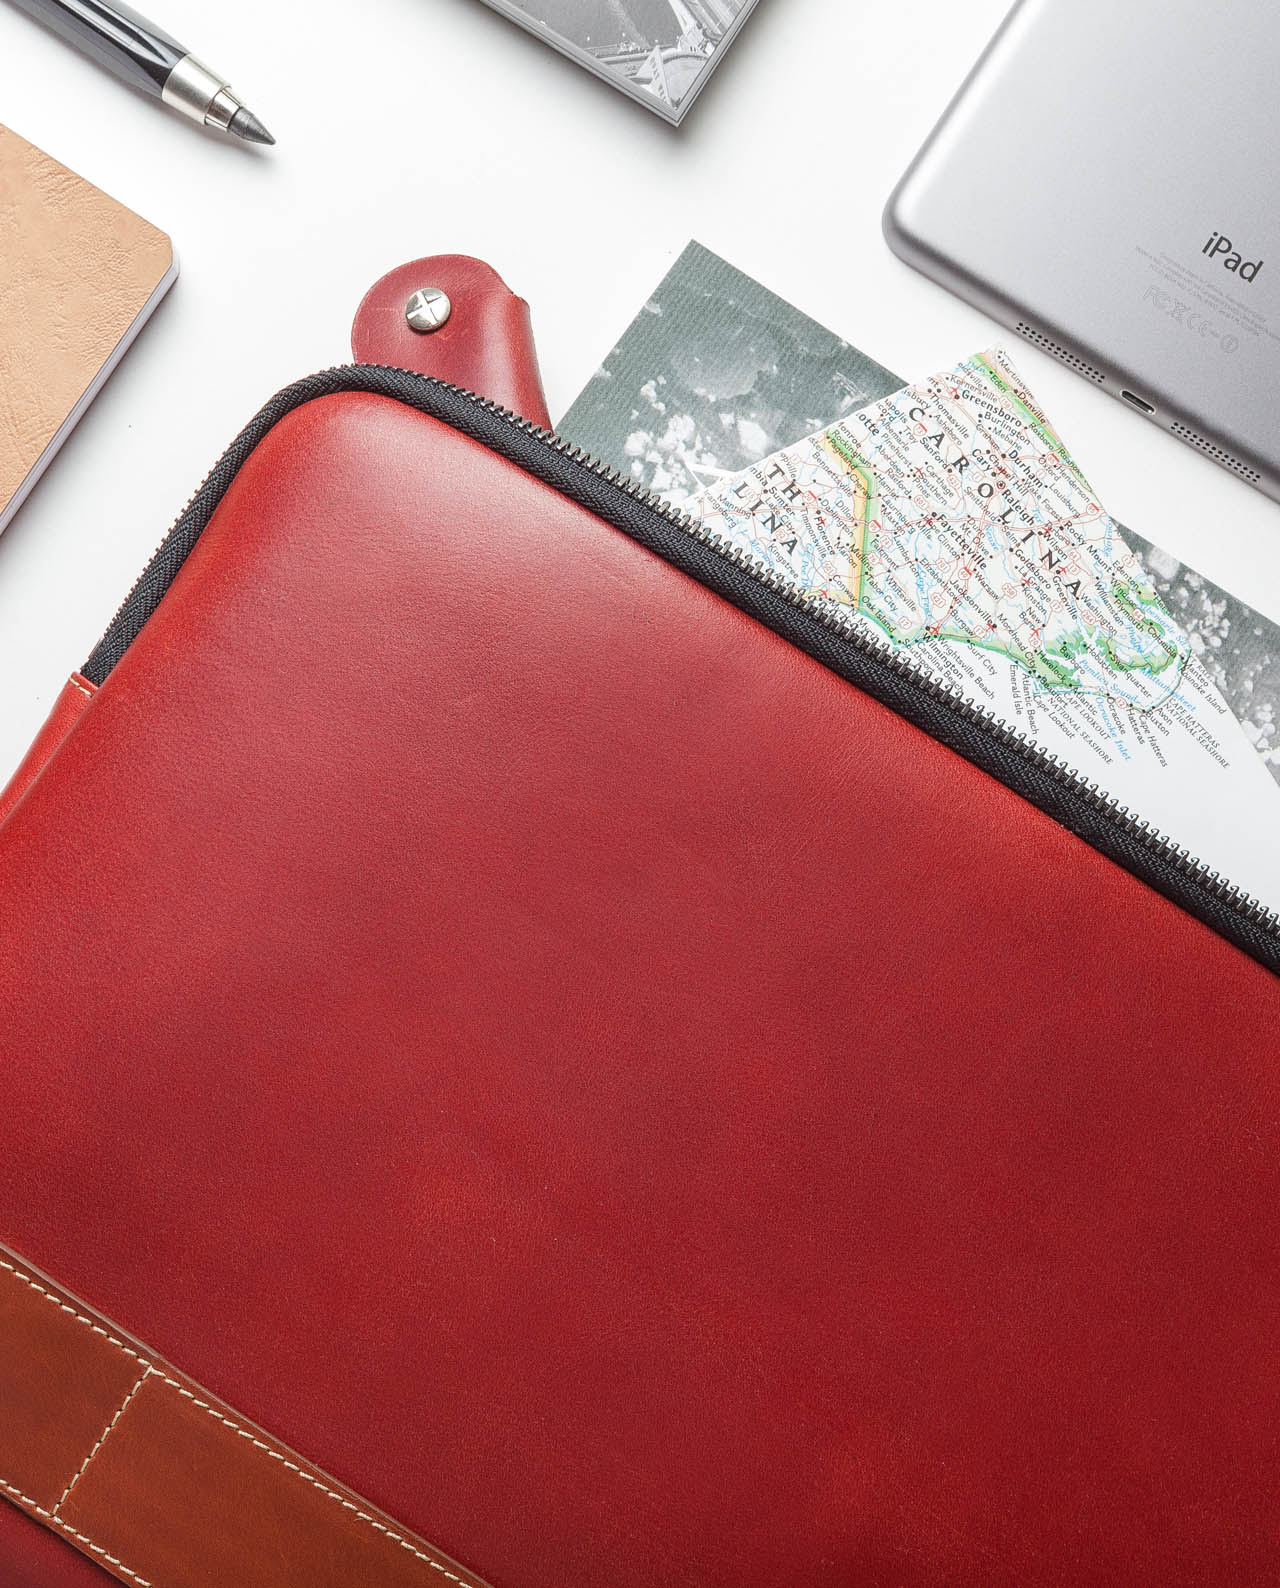 leather portfolio red for 13 inches laptop